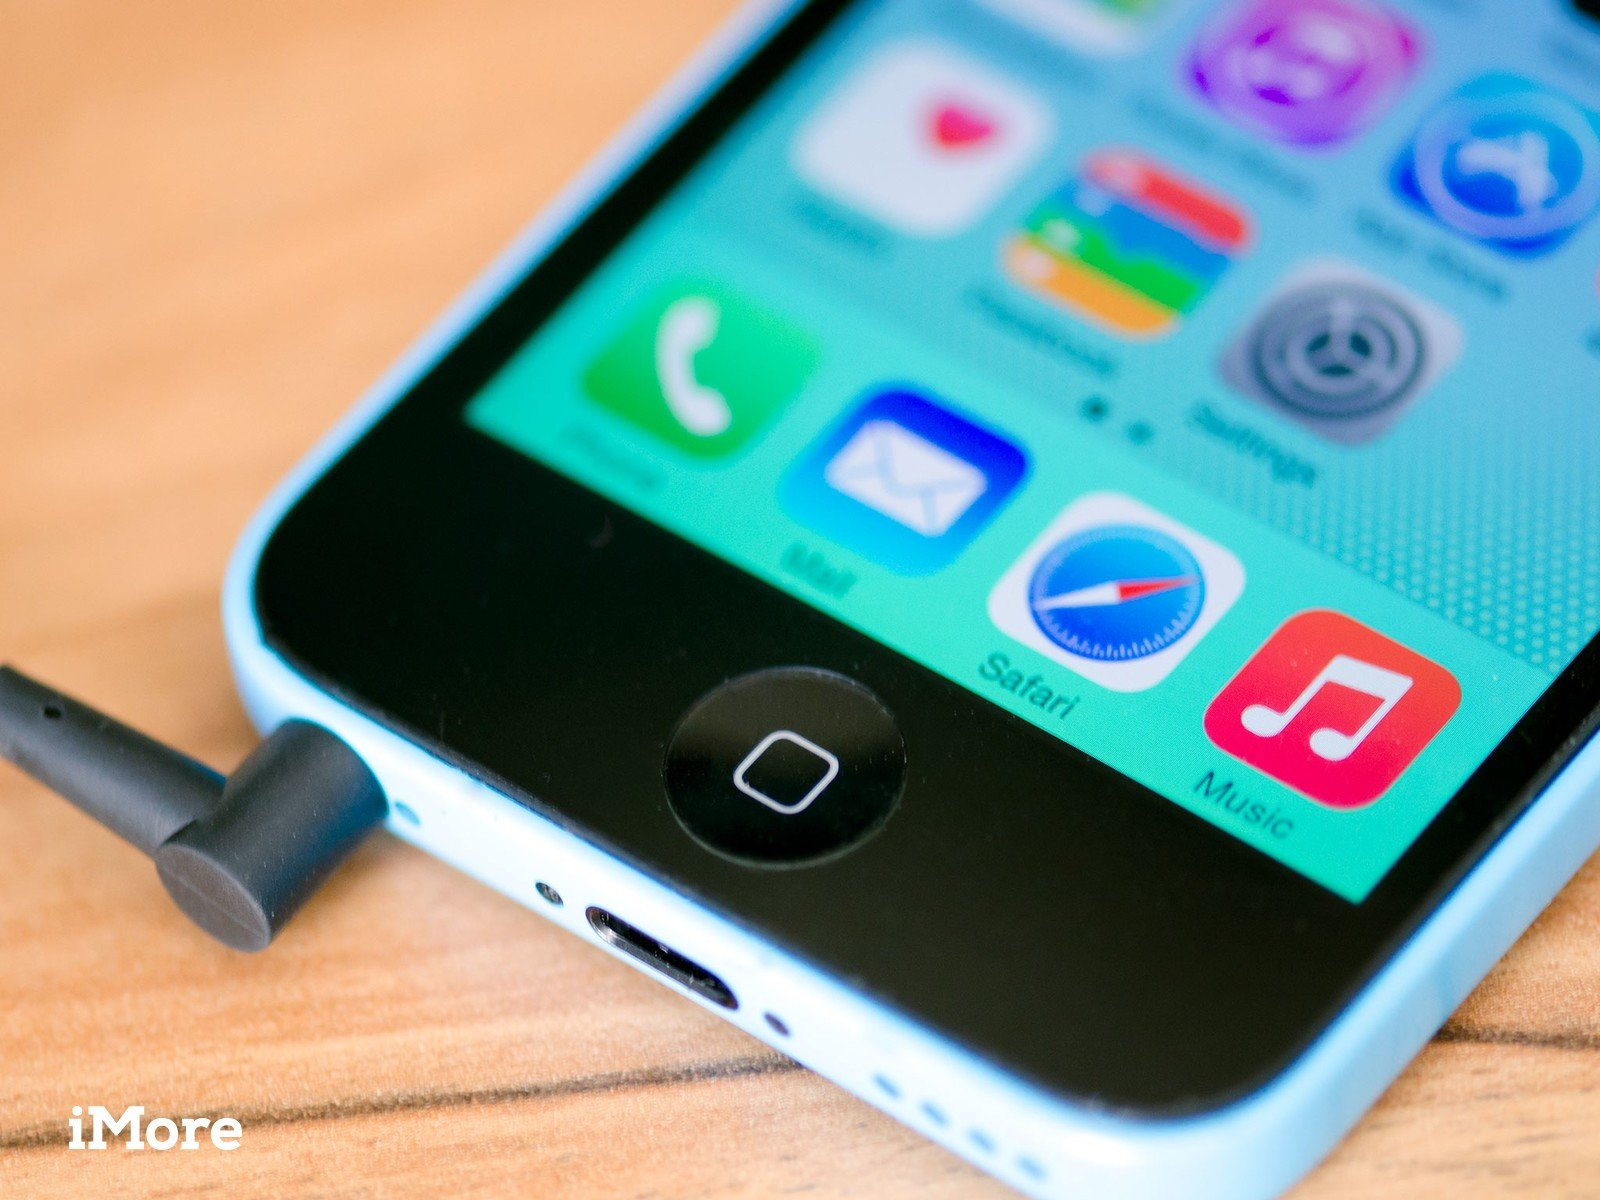 Interesting facts about the iPhone